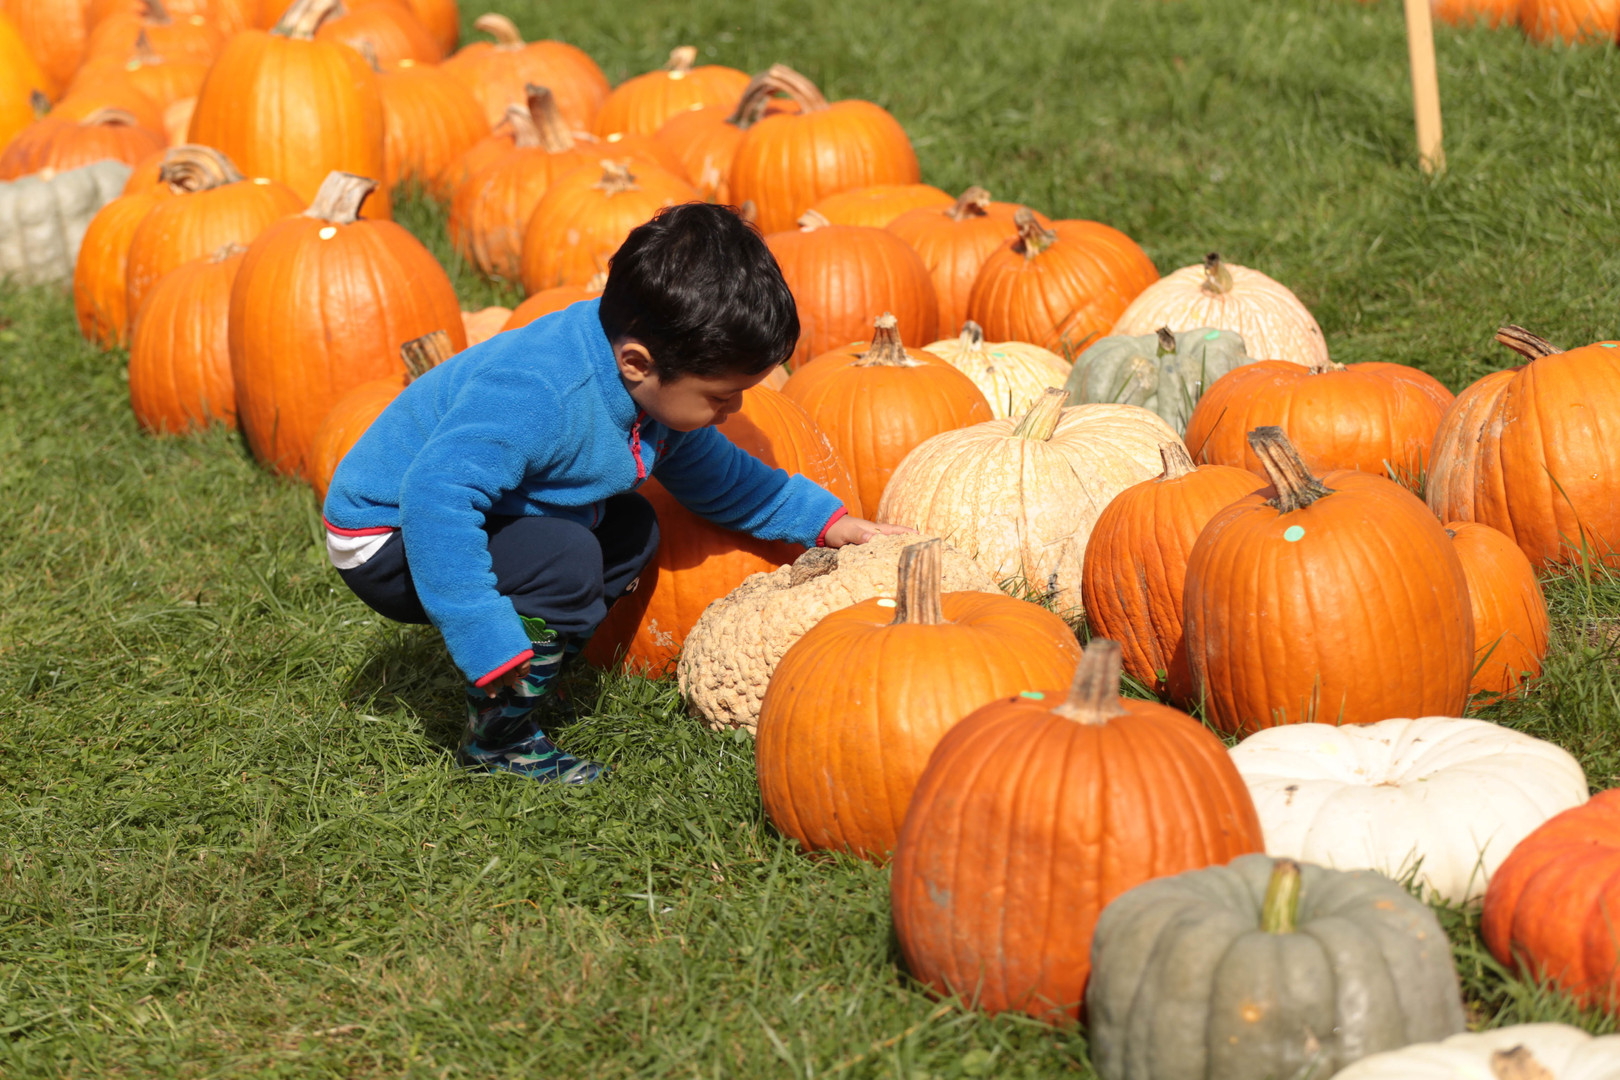 PumpkinPatch2018 (29 of 126).jpg